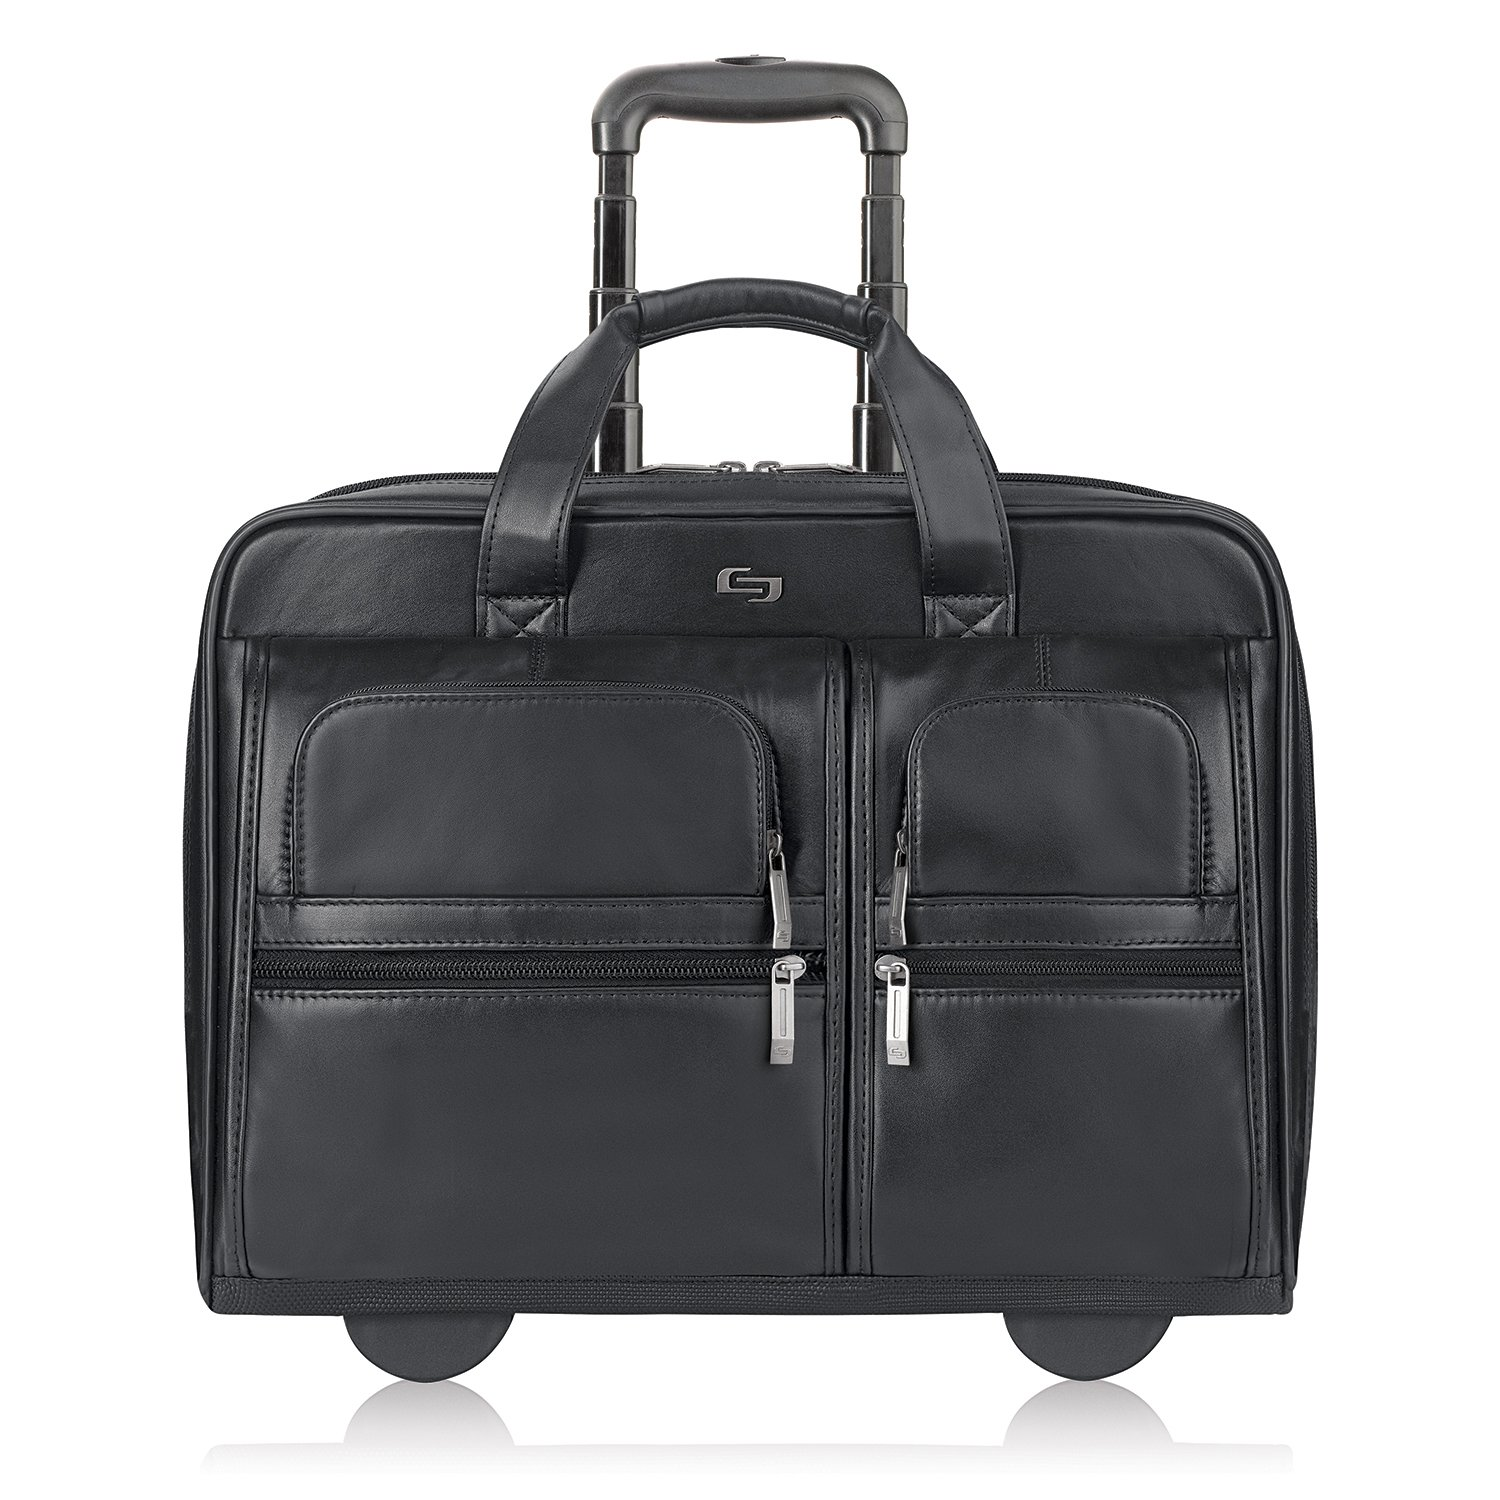 d1daaa1e83a8 Franklin Premium Leather 15.6 Inch Rolling Laptop Case